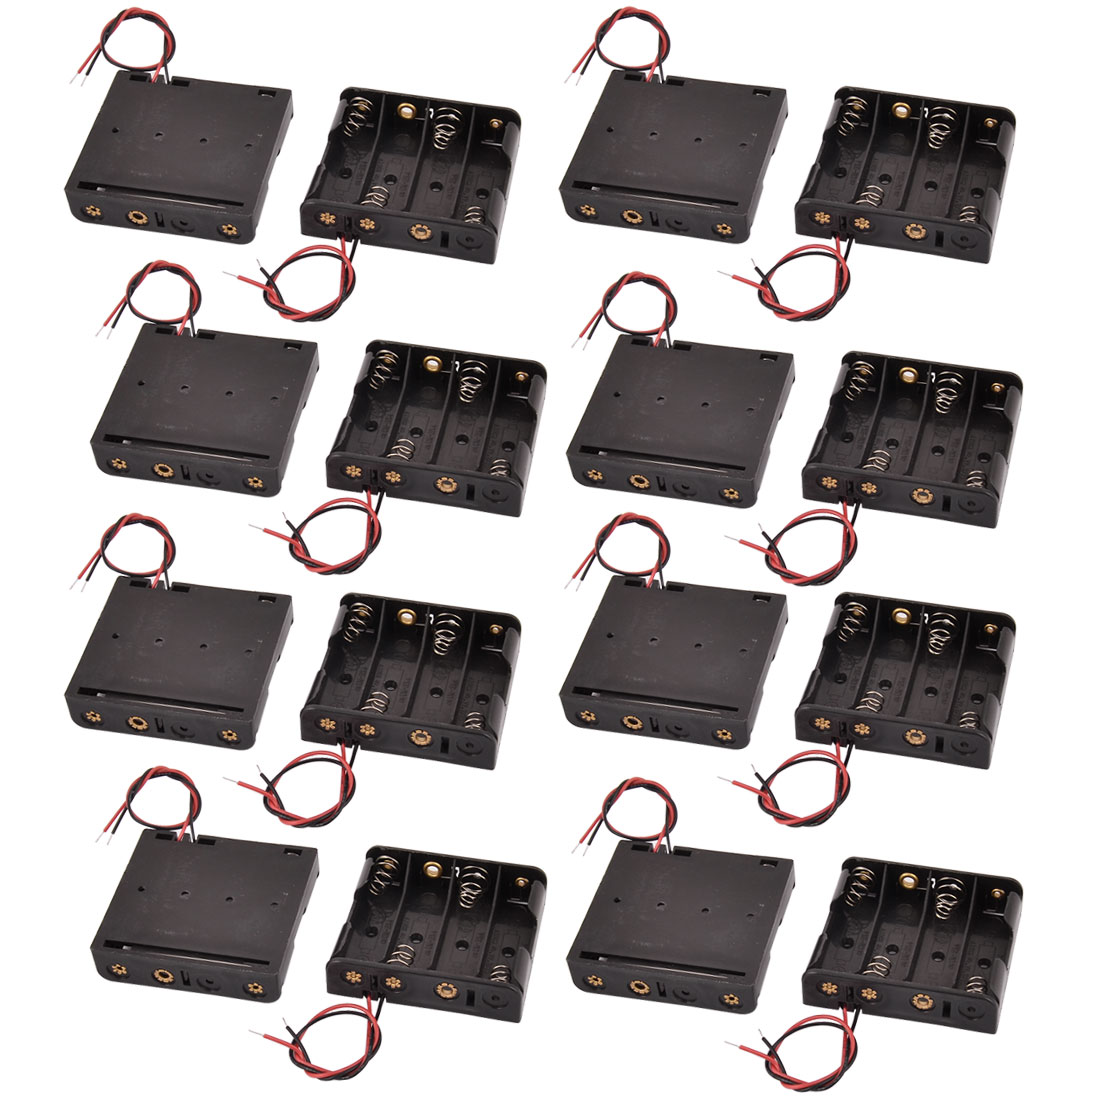 16 Pcs 4 x 1.5V AA Black Battery Batteries Holder Case with Wire Leads